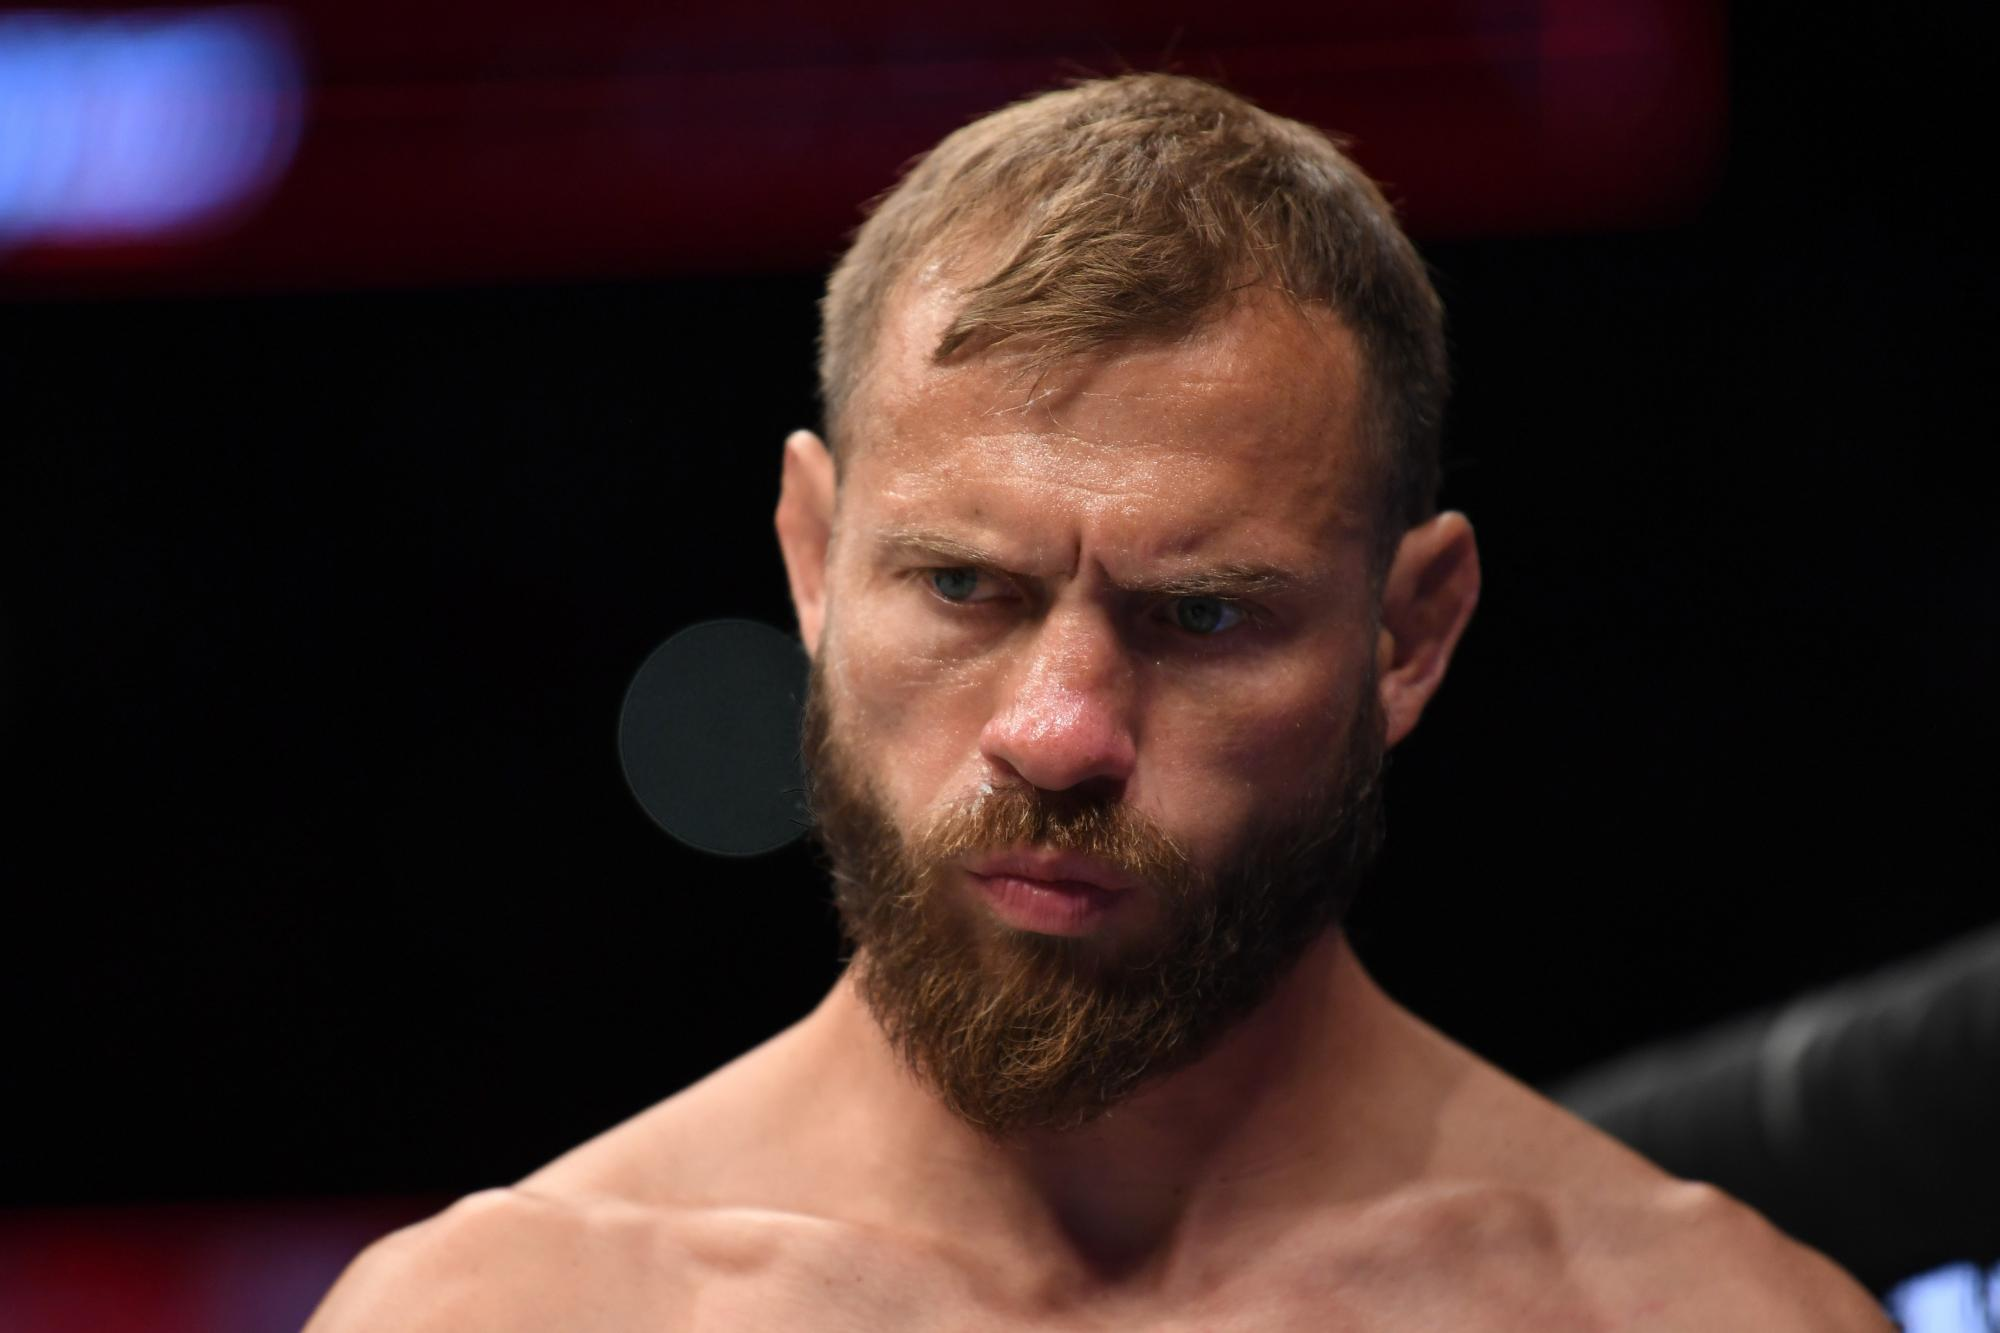 UFC News: Cowboy takes umbrage at fan who accused him of taking a dive against McGregor: 'Who do you think you're talking to?' - Donald Cerrone